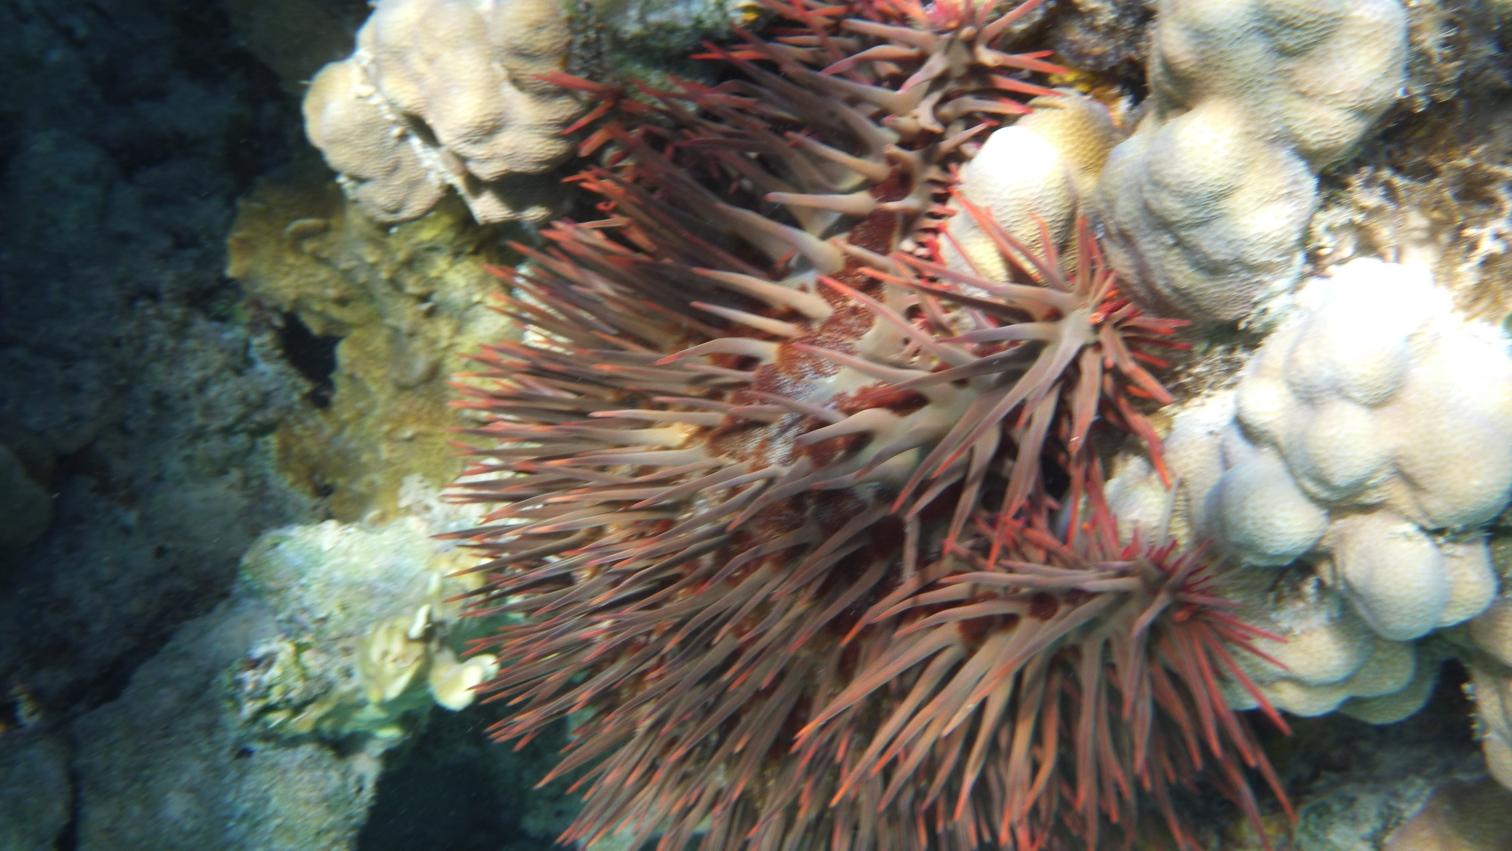 Korona cierniowa Acanthaster planci  Crown-of-thorns sea star